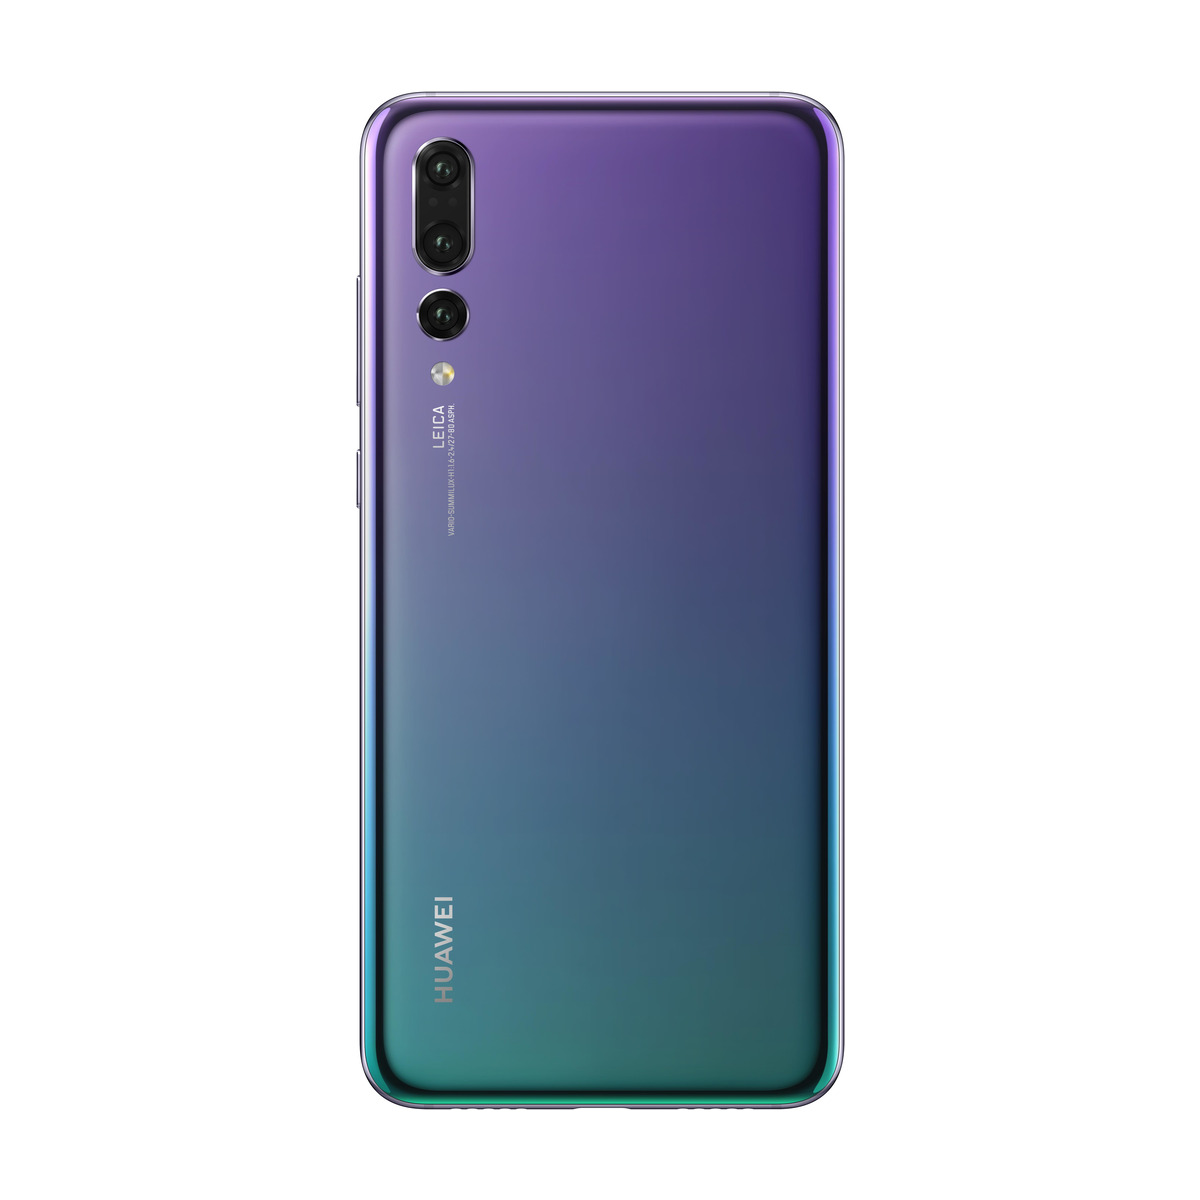 HUAWEI P20 PRO 128GB FIOLETT Power.no